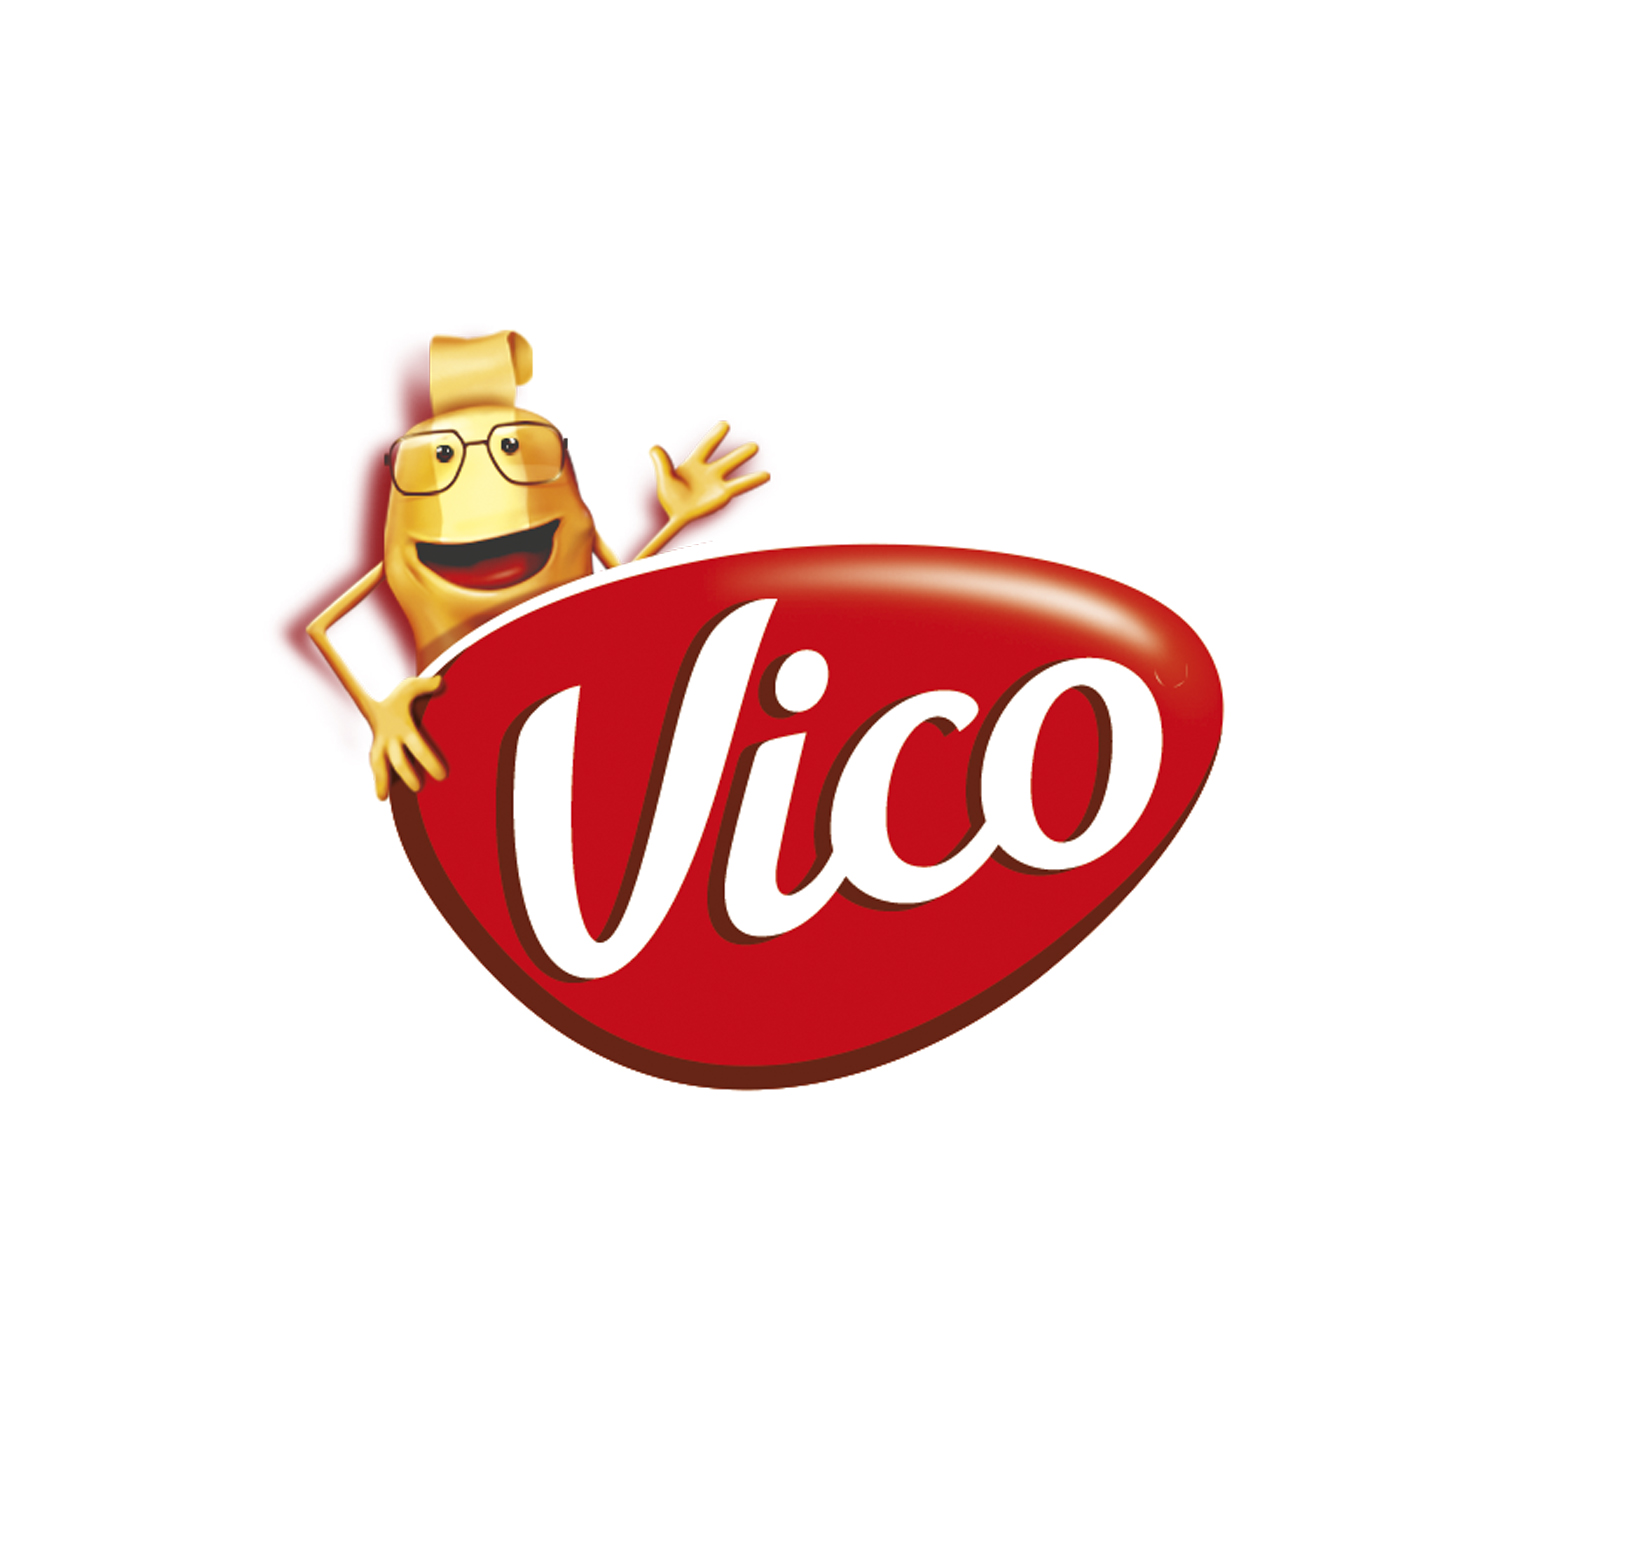 Comment contacter Vico ?